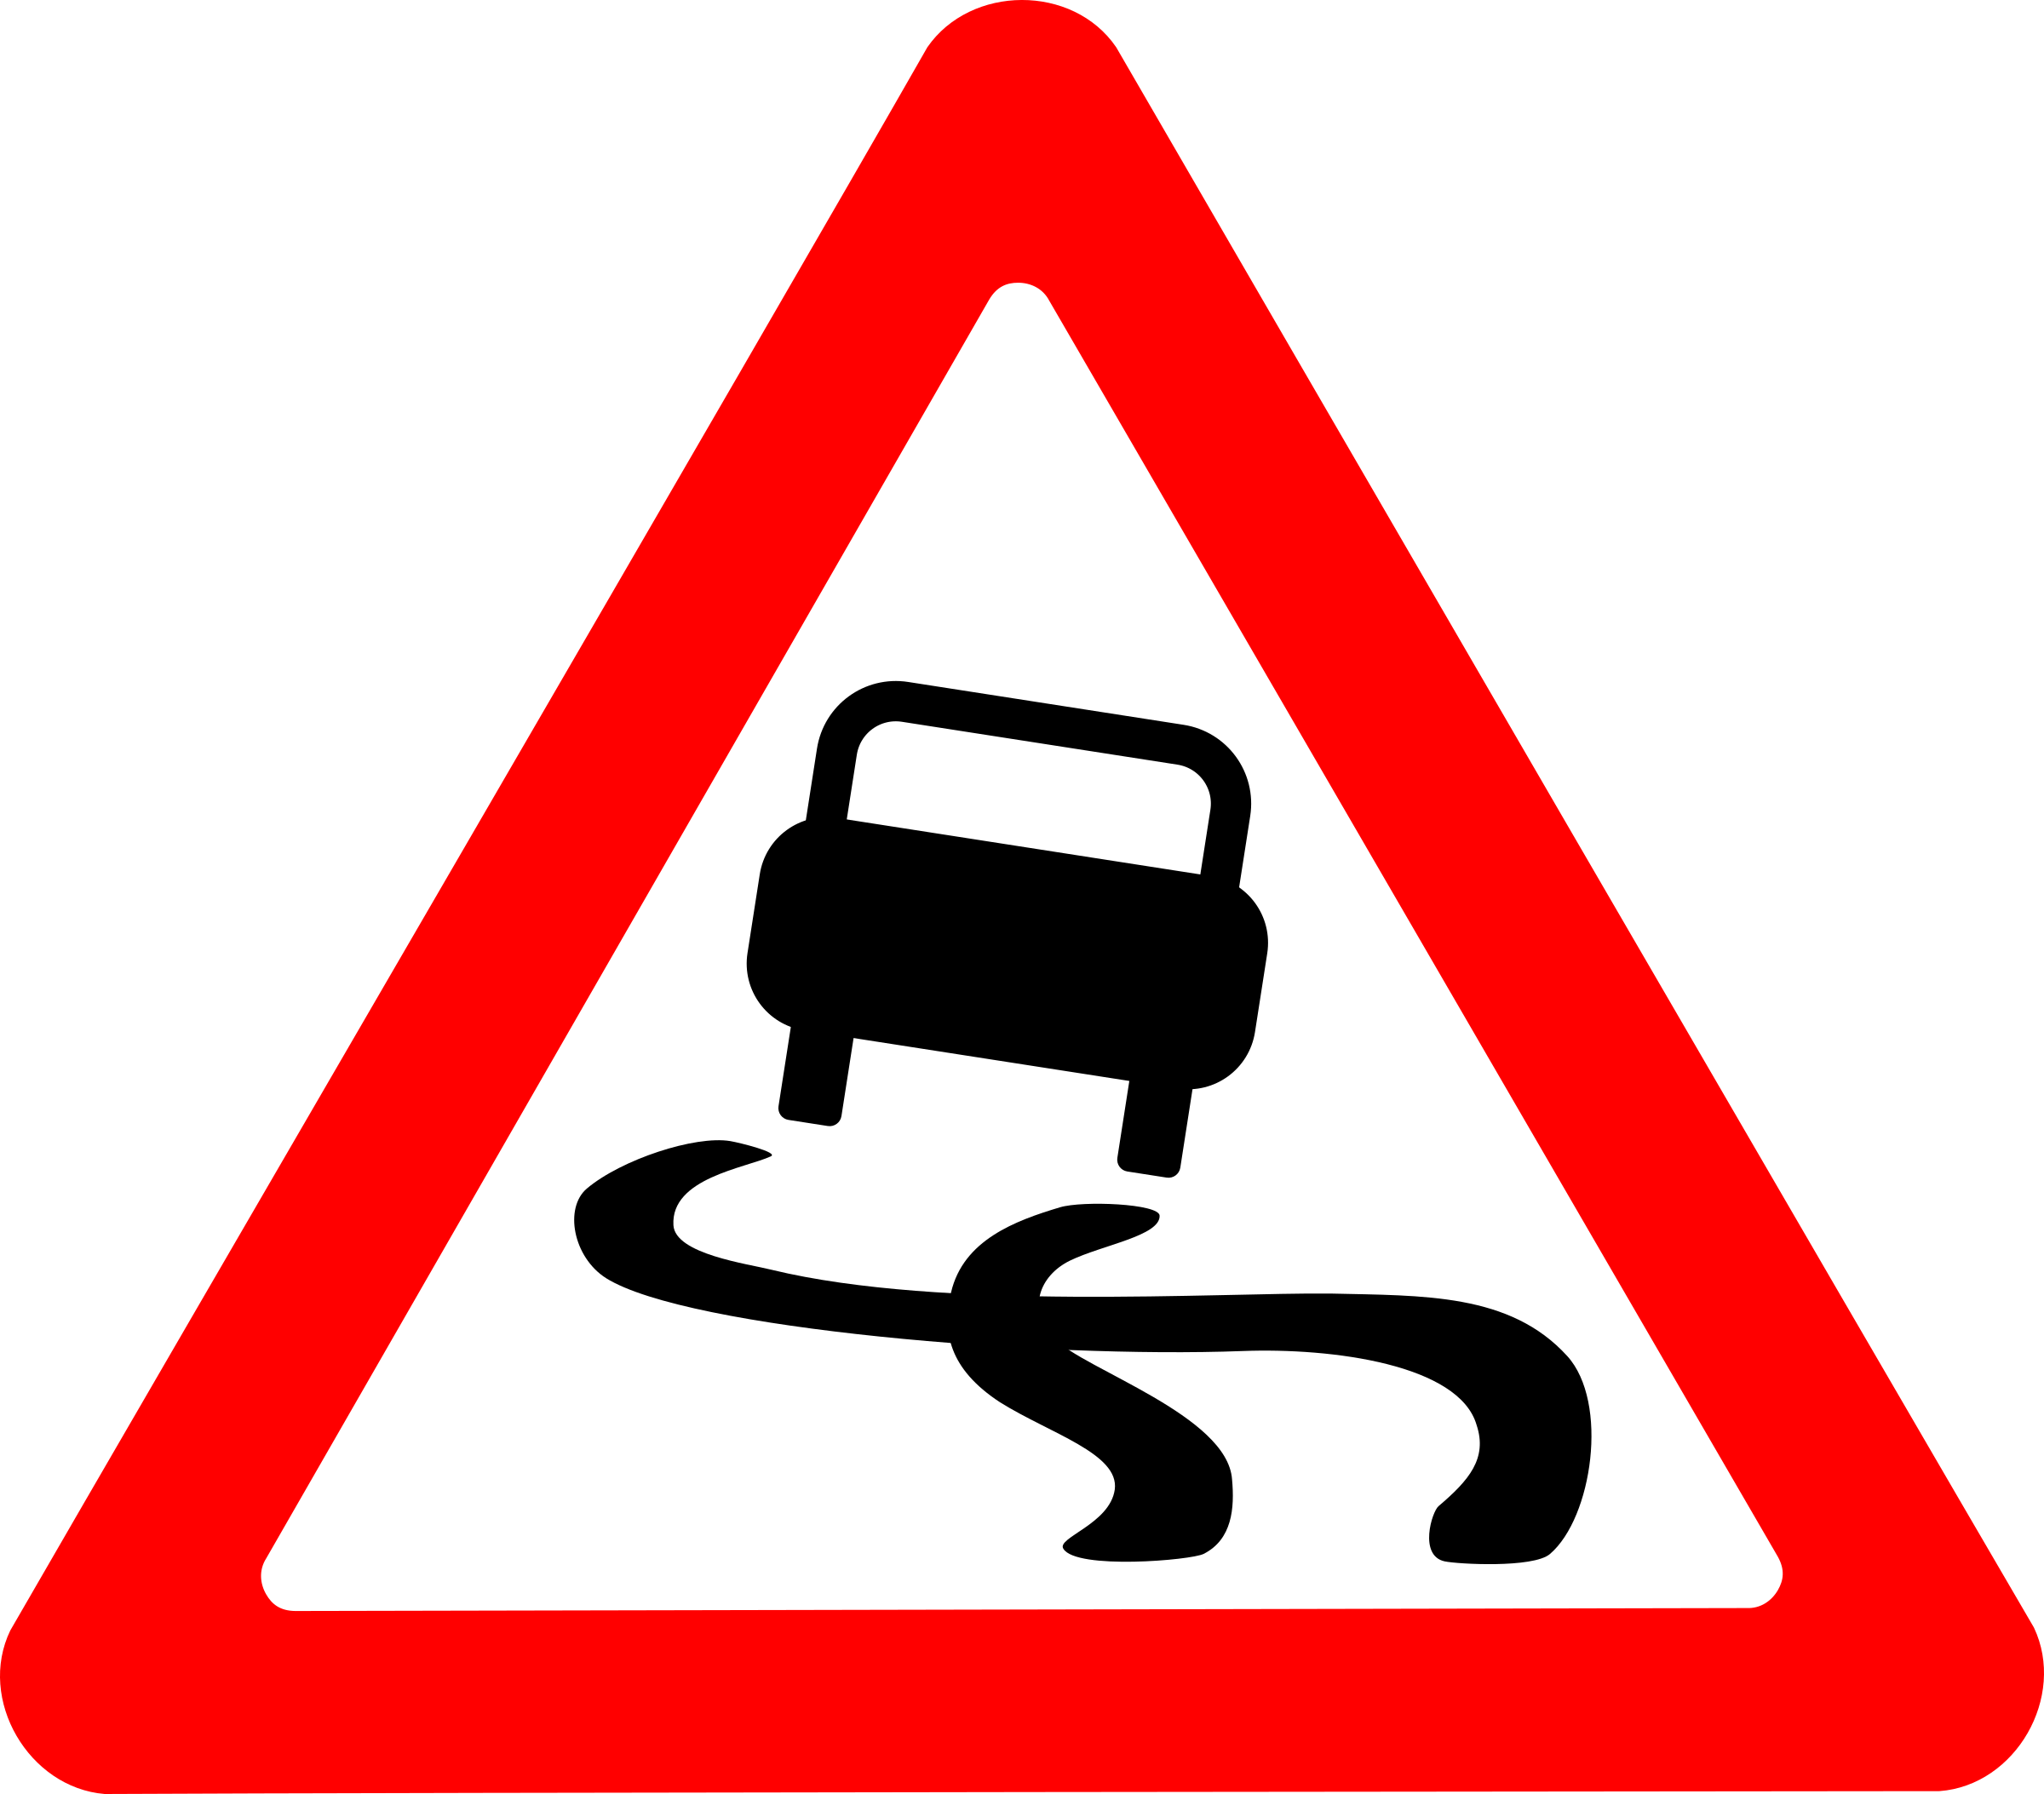 Roadsign slippery by Simarilius